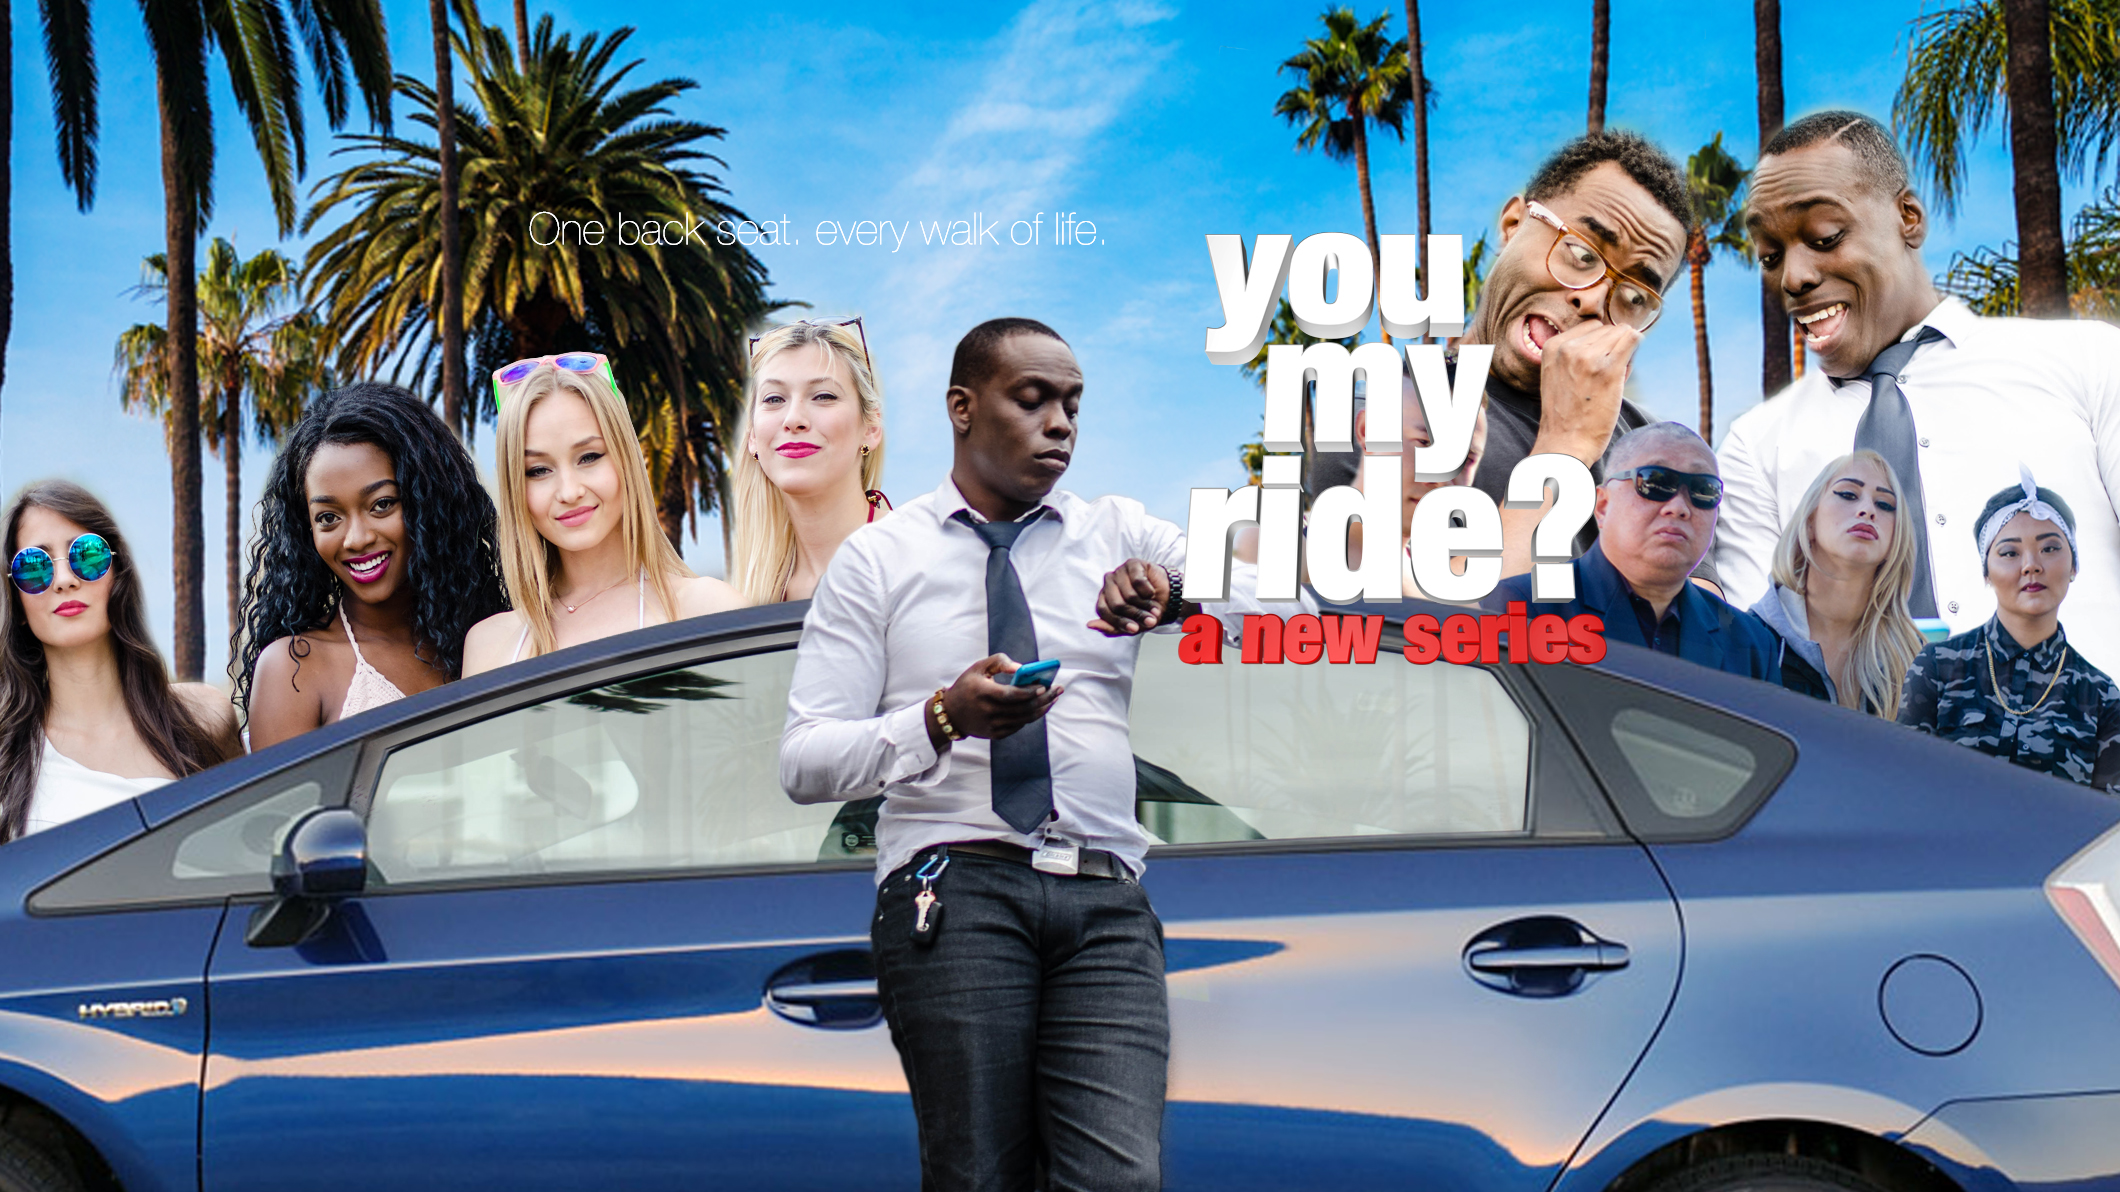 You My Ride? - Original Web Series Launches on YouTube